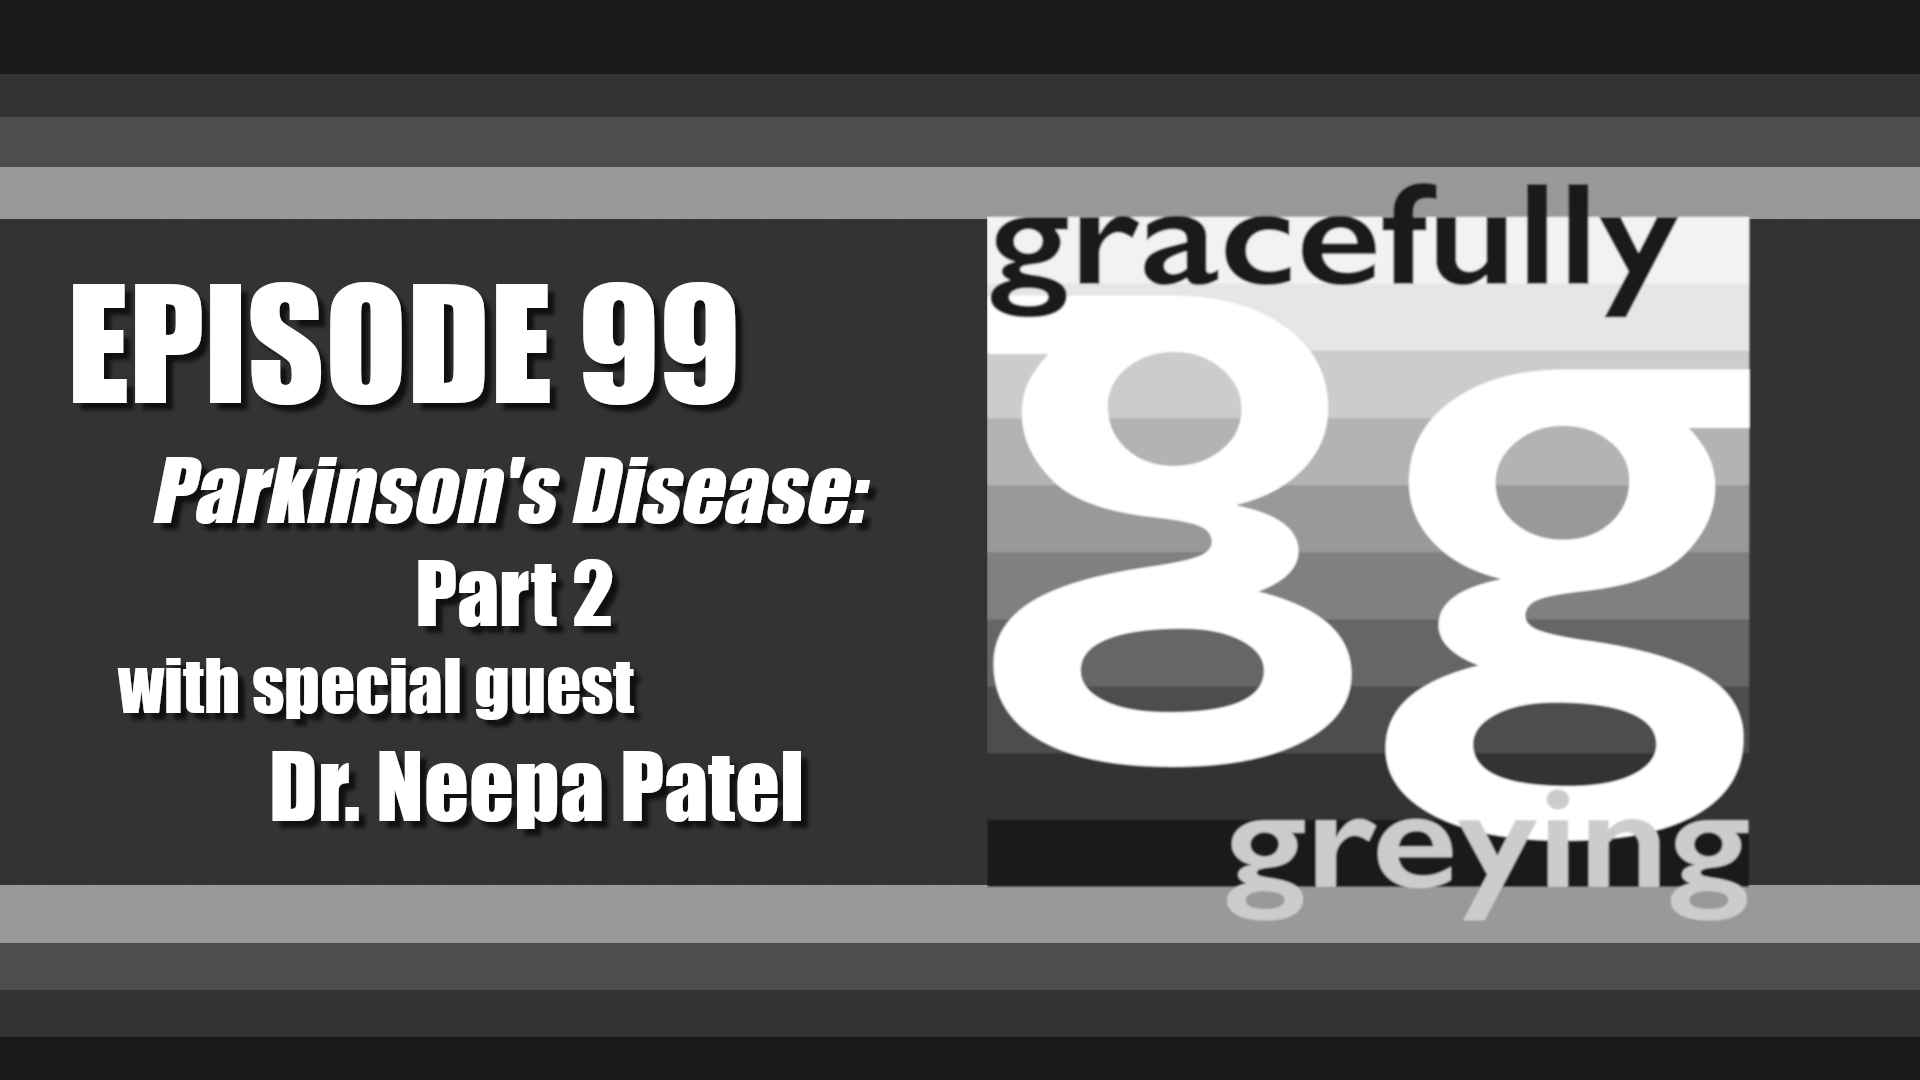 Gracefully Greying - Episode 99 - Parkinson